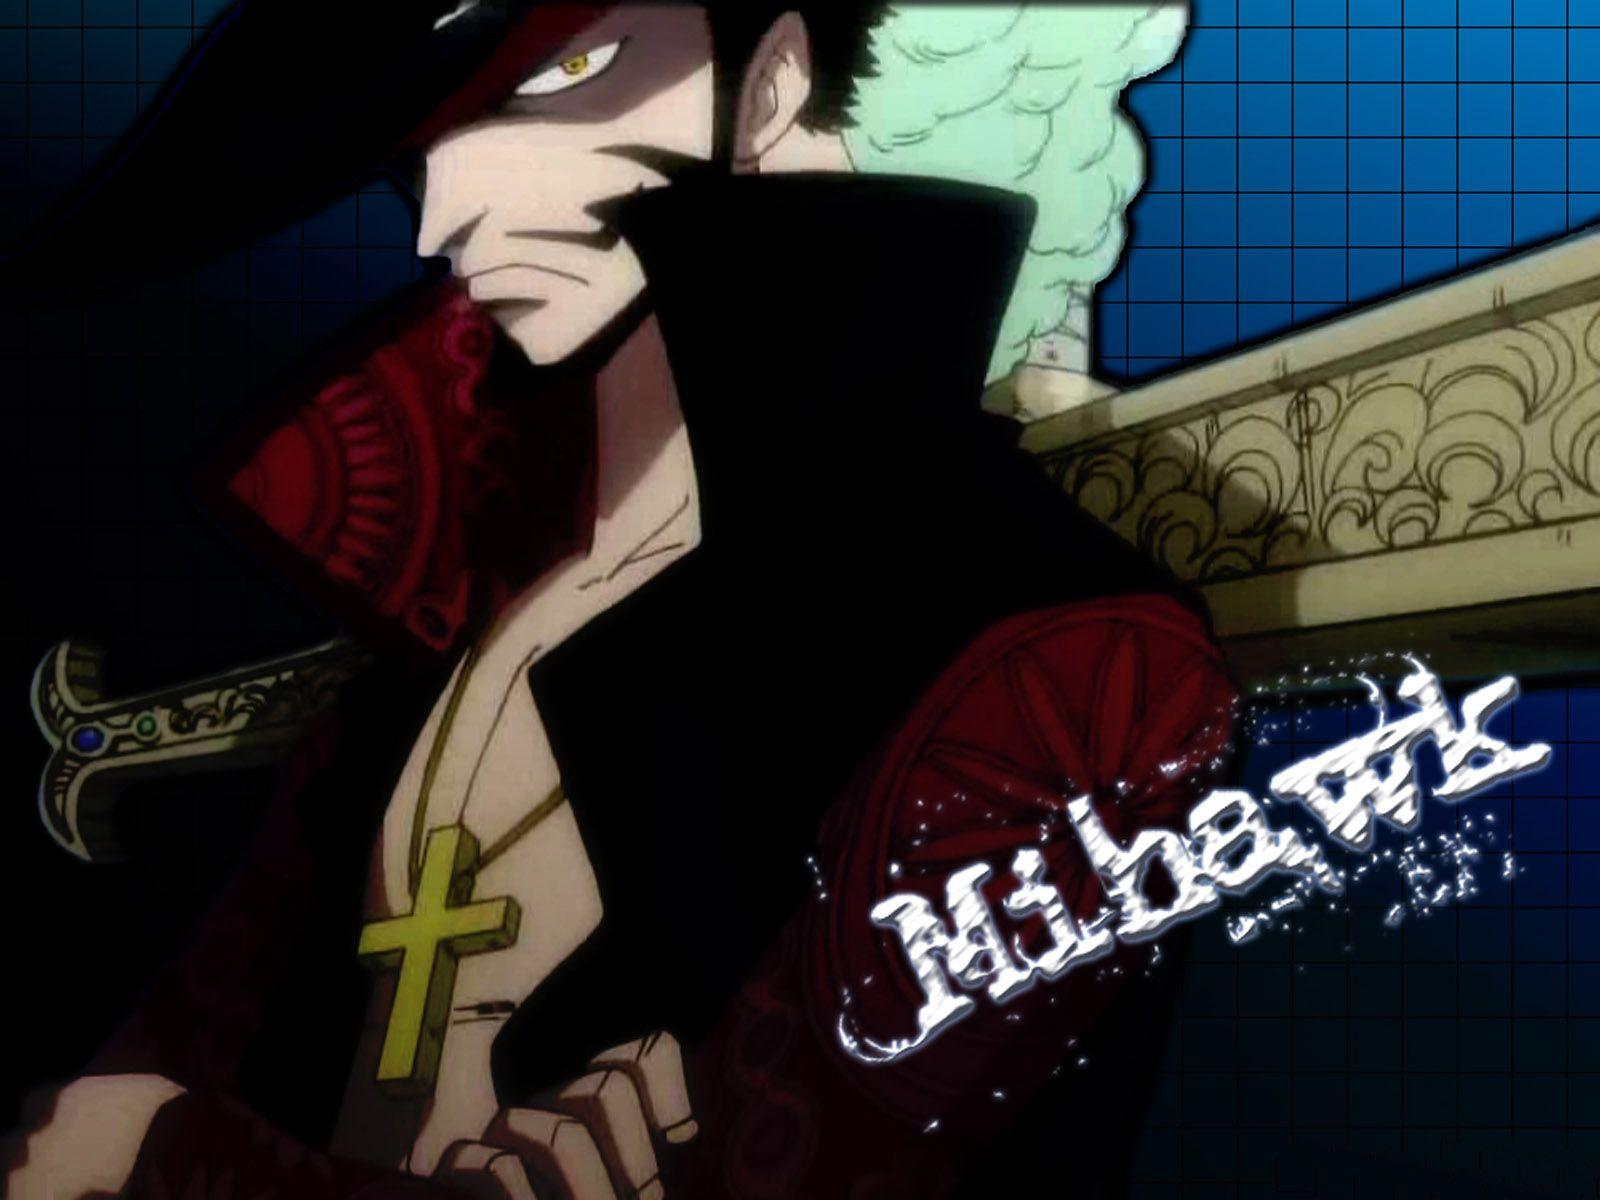 Mihawk Wallpapers,One Piece Wallpapers & Pictures Free Download